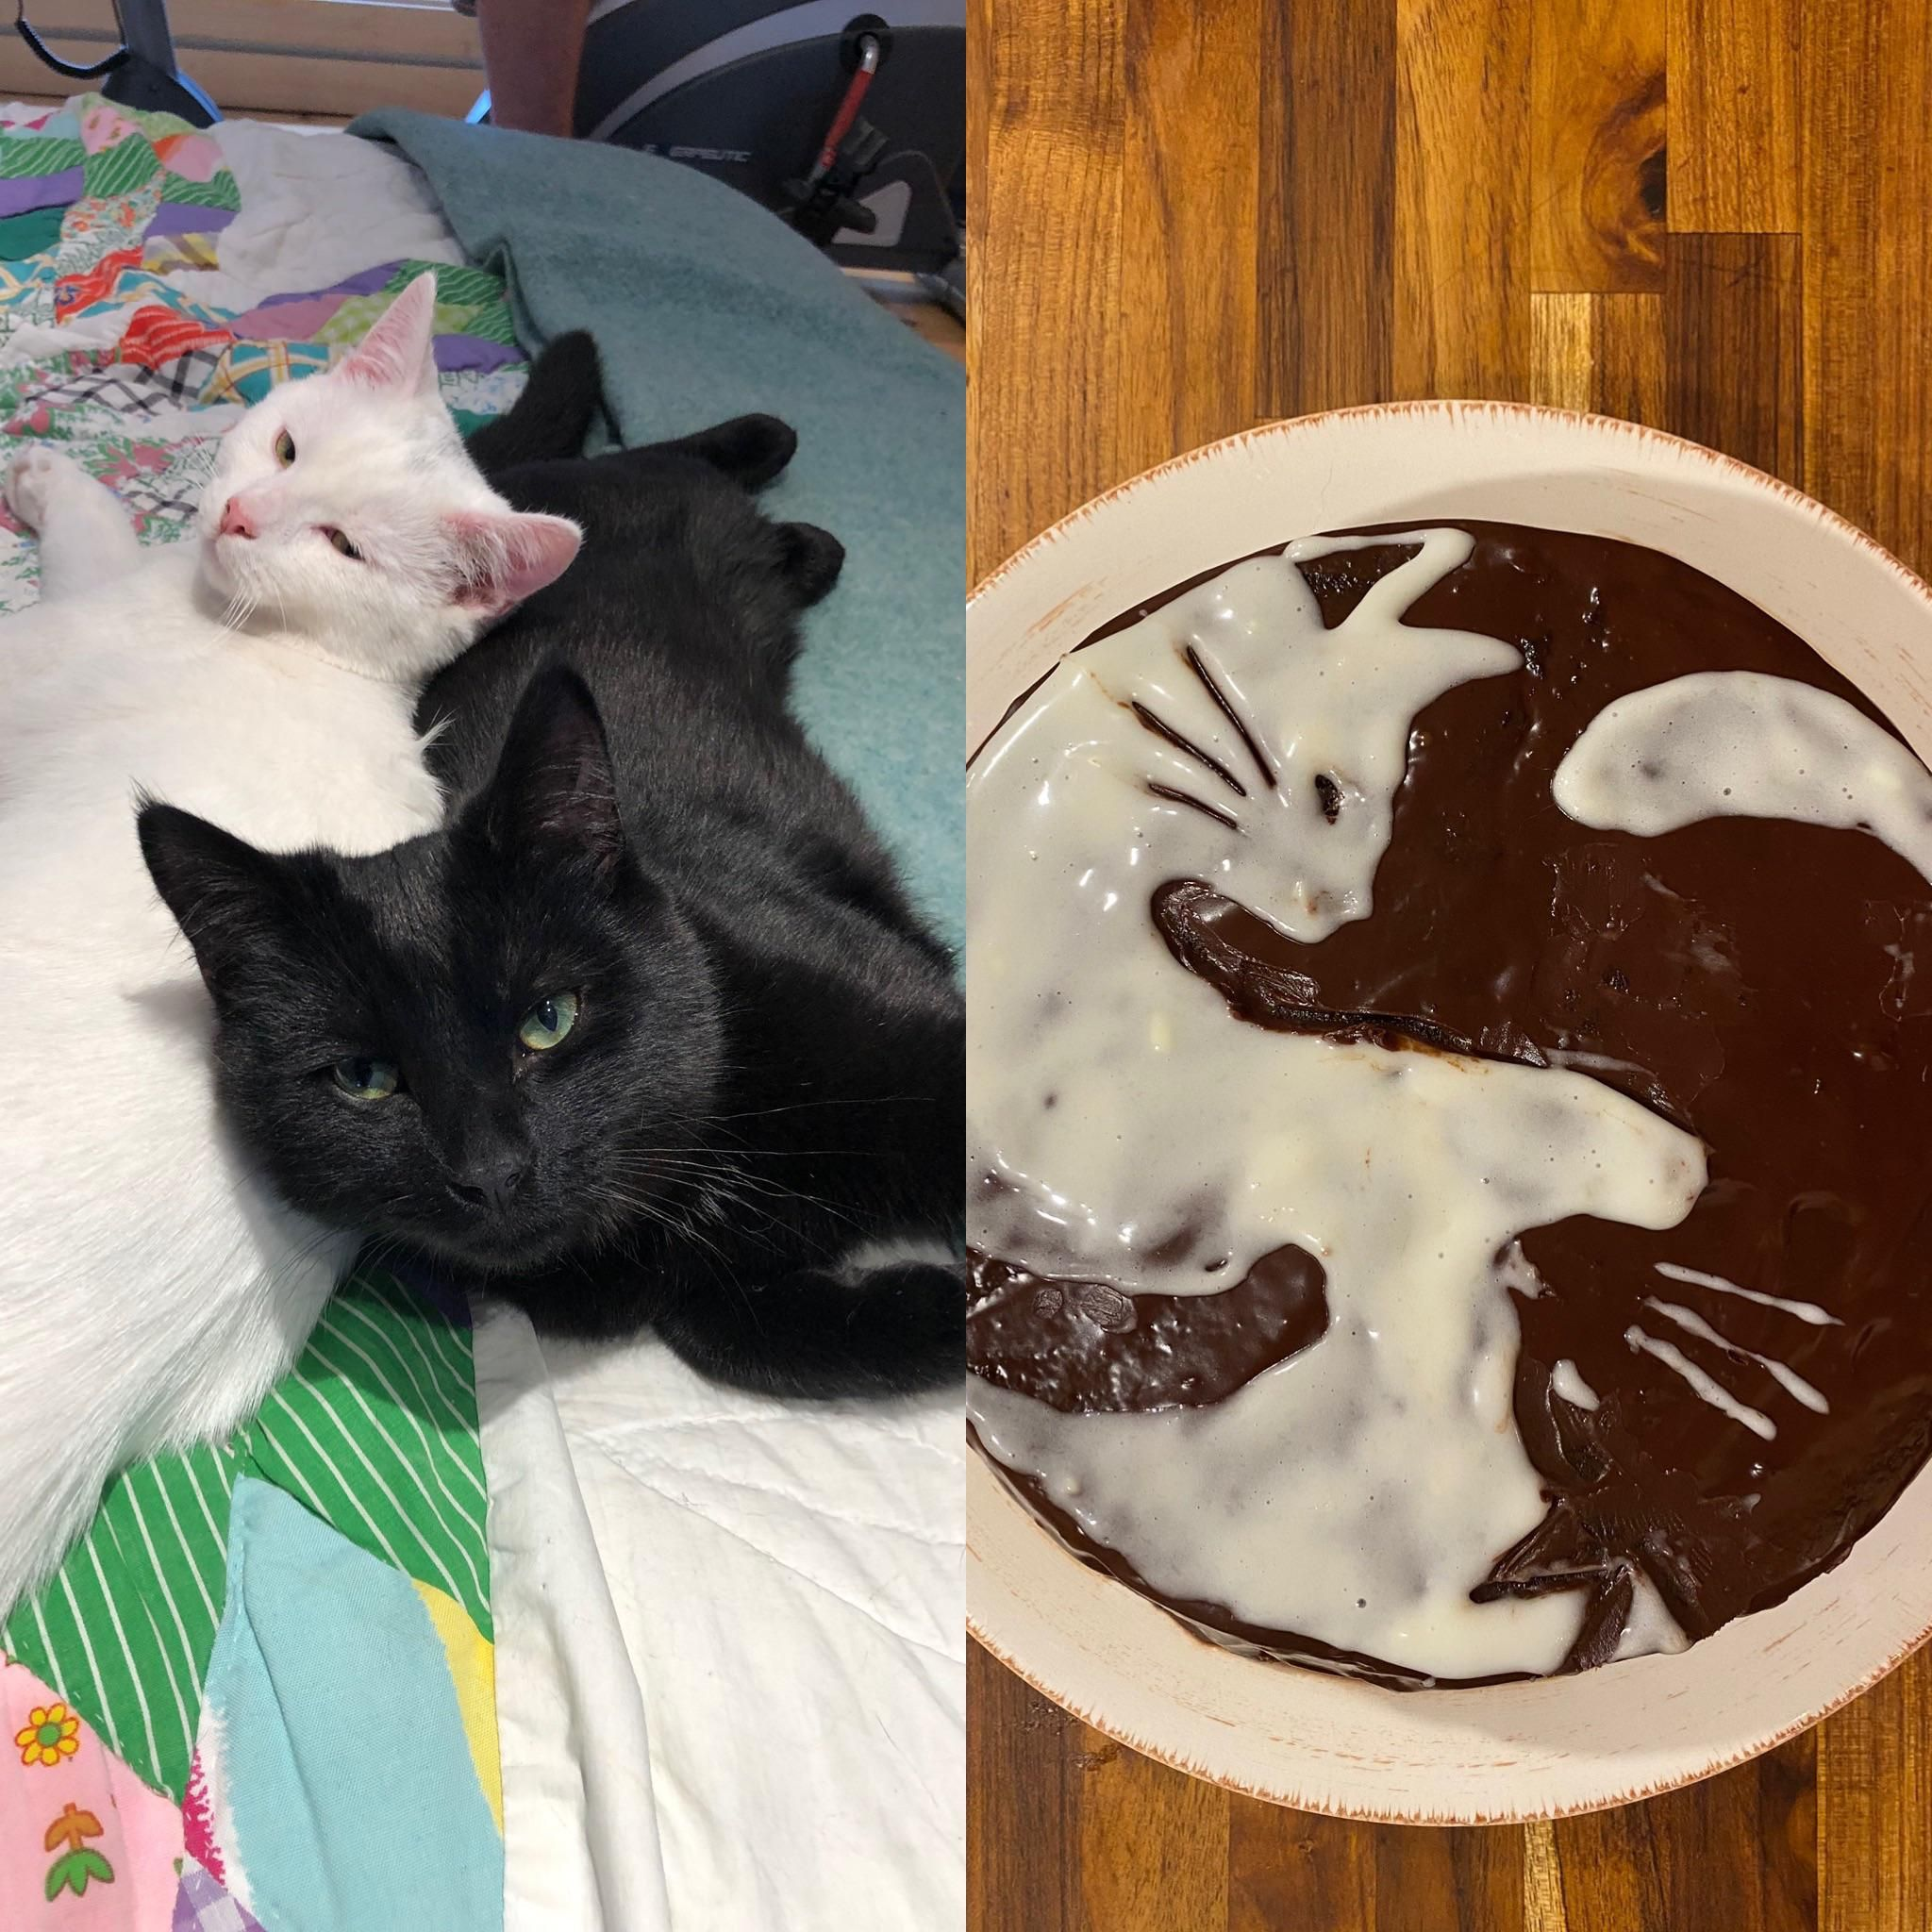 Real Estate Marketing Reviews The Ying Yang Twins Had A Birthday And This Is Their Birthday Cake In 2020 Ying Yang Twins Ying Yang Cuteness Overload